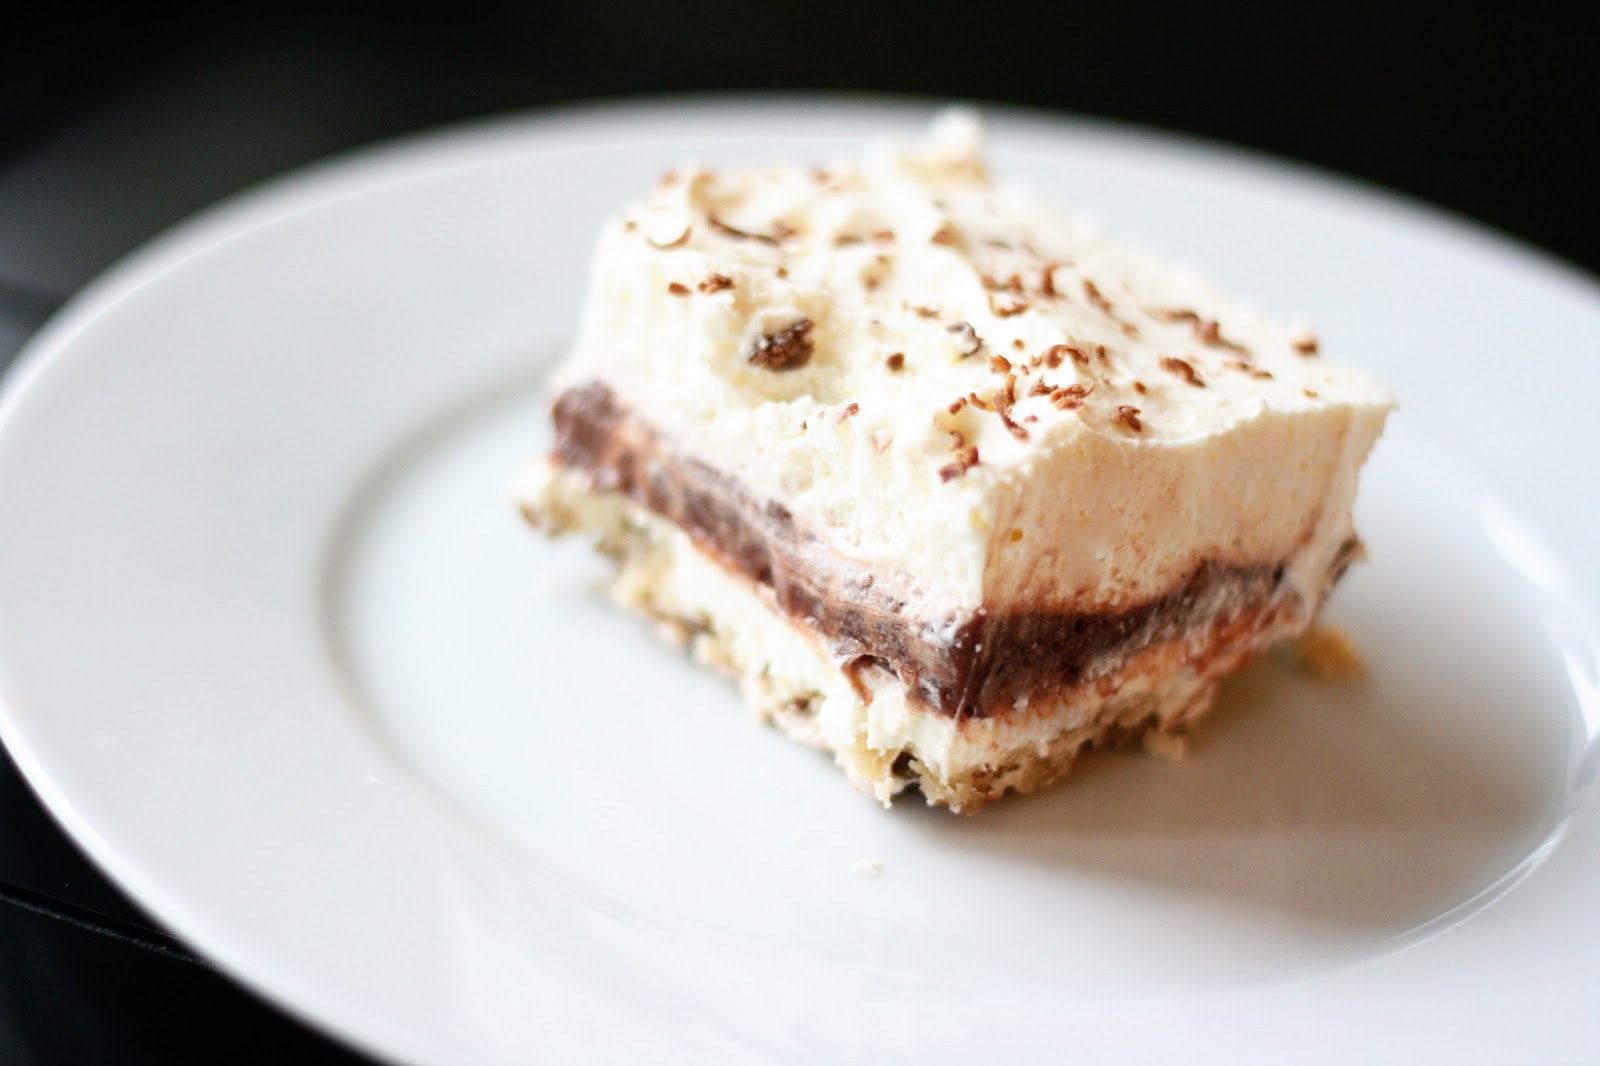 naughty carbs chocolate pudding dessert low carb. Black Bedroom Furniture Sets. Home Design Ideas